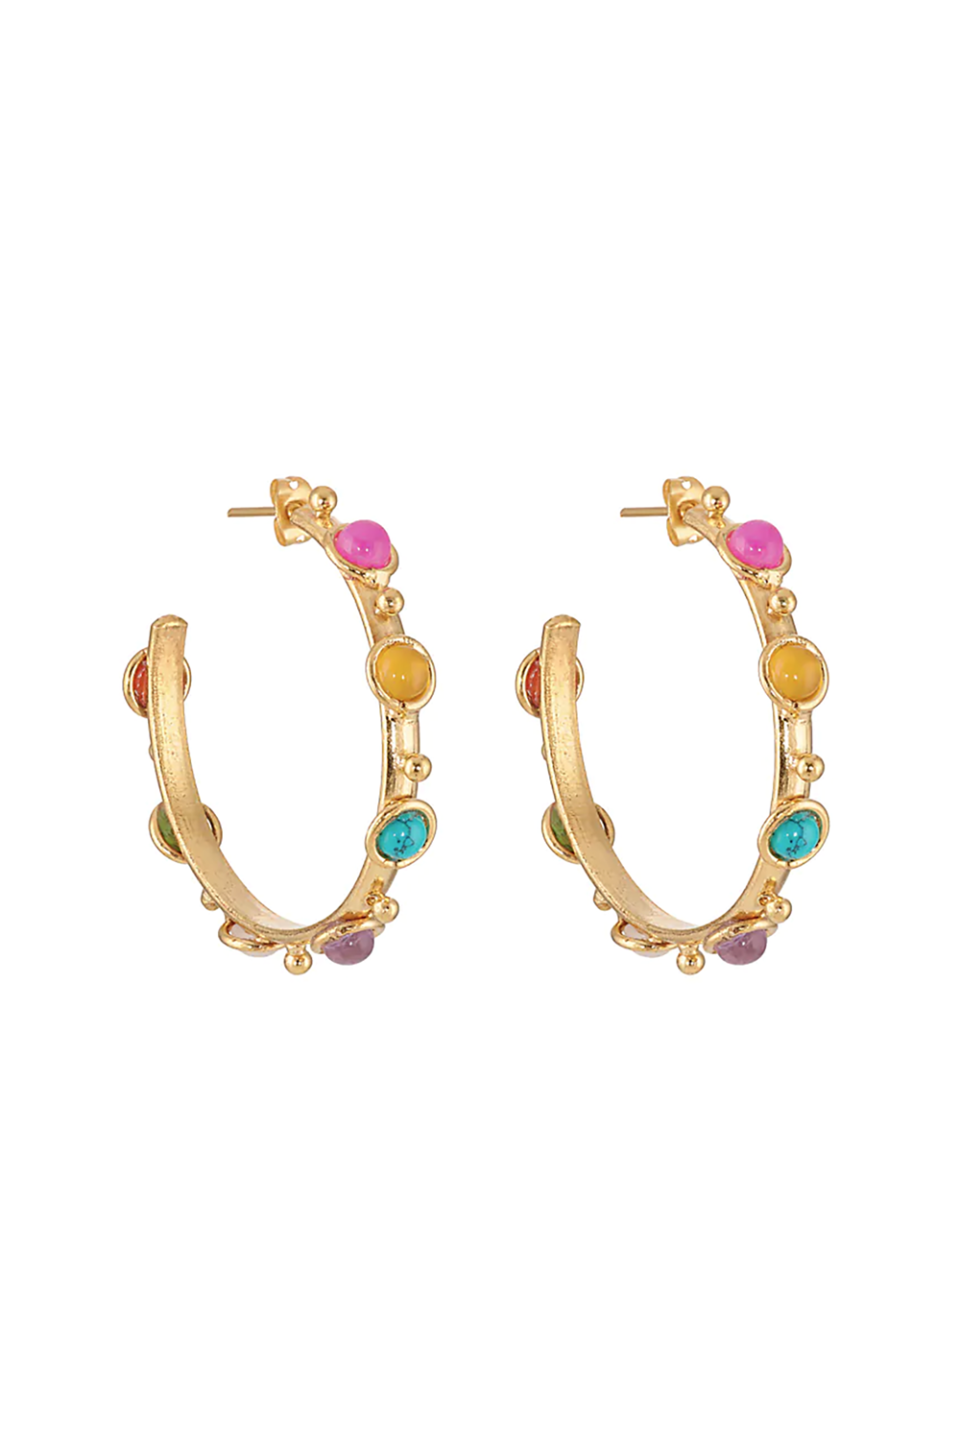 """<p><strong>Sylvia Toledano</strong></p><p>barneys.com</p><p><strong>$140.00</strong></p><p><a href=""""https://www.barneys.com/product/sylvia-toledano-petite-candy-hoop-earrings-506219942.html"""" rel=""""nofollow noopener"""" target=""""_blank"""" data-ylk=""""slk:SHOP IT"""" class=""""link rapid-noclick-resp"""">SHOP IT</a></p><p>Most French brands are known for being low-key and subtle, think Sézane or Rouje, but Sylvia Toledano is known for her dazzling oversized jewelry collections that were inspired by her childhood in Africa. These hoops instantly transport you to the faraway destination with its colorful pieces of red and yellow onyx, amethyst, turquoise, and carnelian. </p>"""